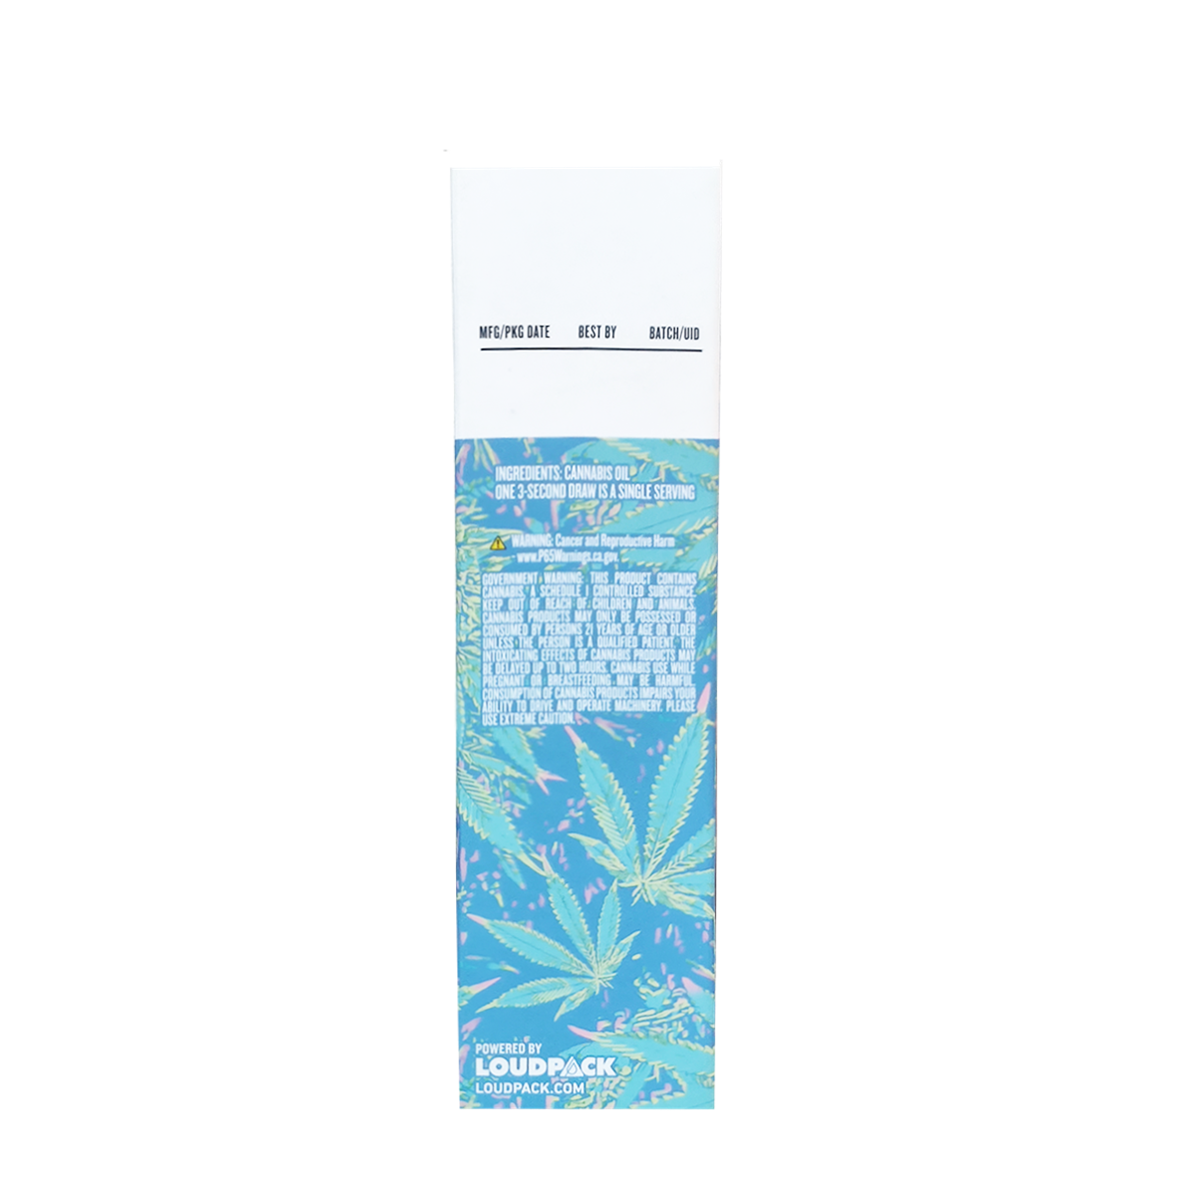 Cbd wachs water soluble Best Quality with price